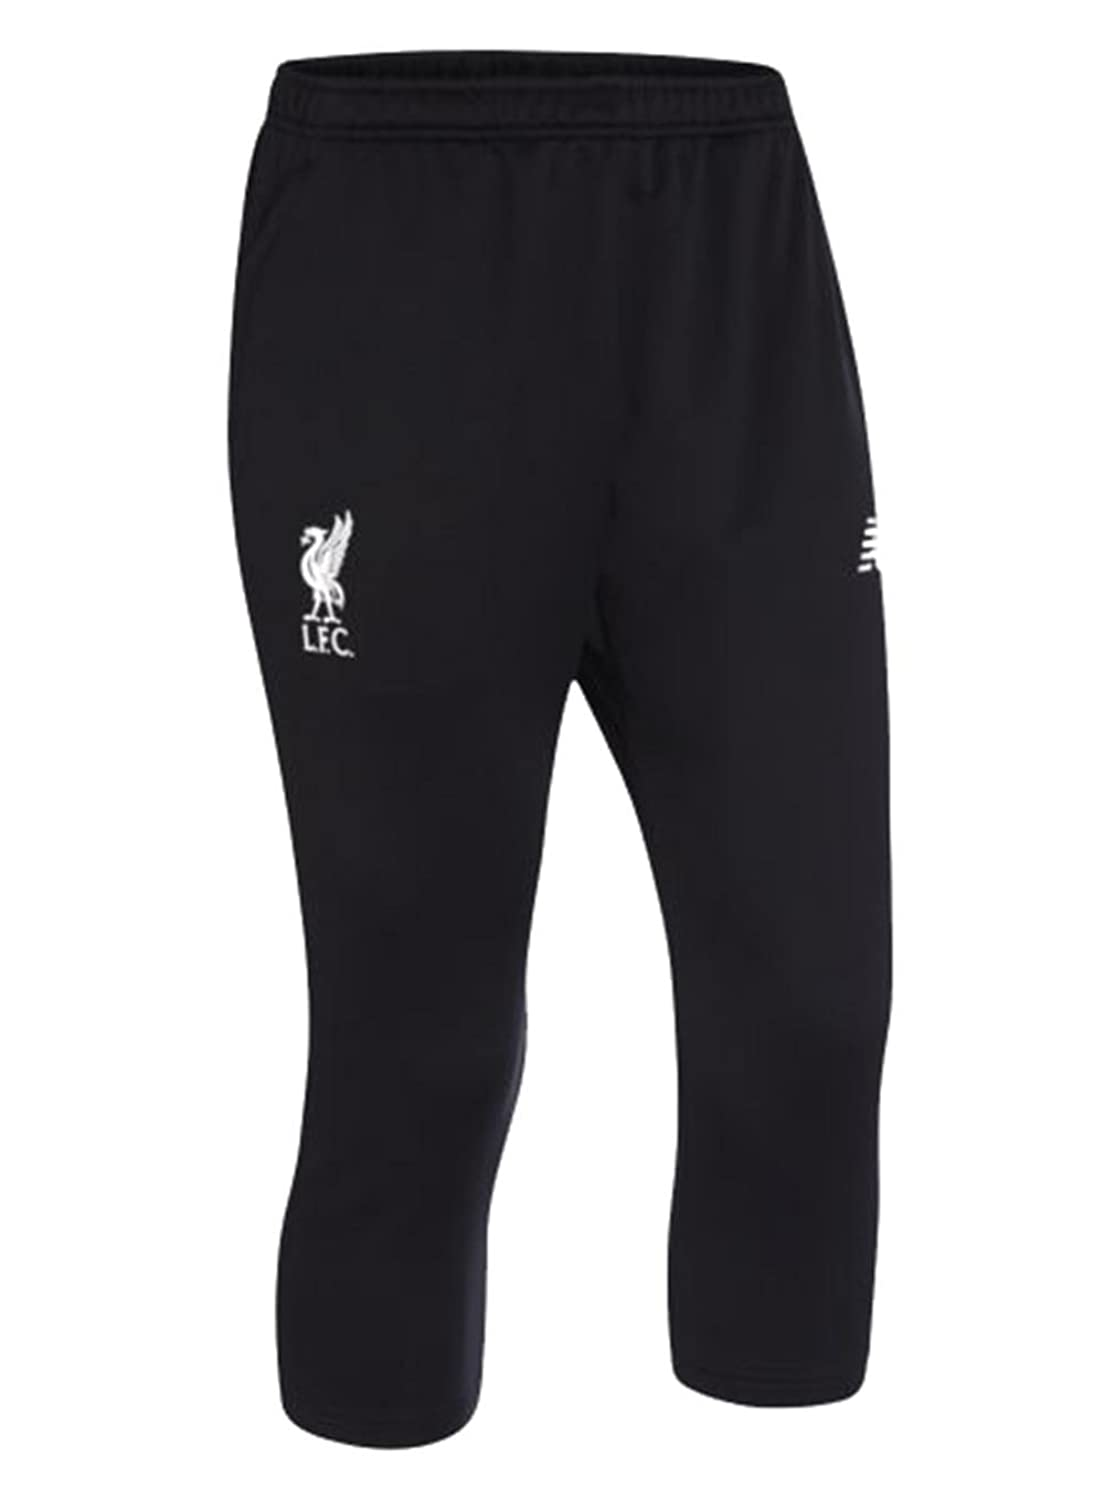 New Balance Liverpool FC Elite Training 3/4 Pant Knitted/サッカーユニフォームリヴァプールFC 3/4 パンツ B01KSASKGW US Large